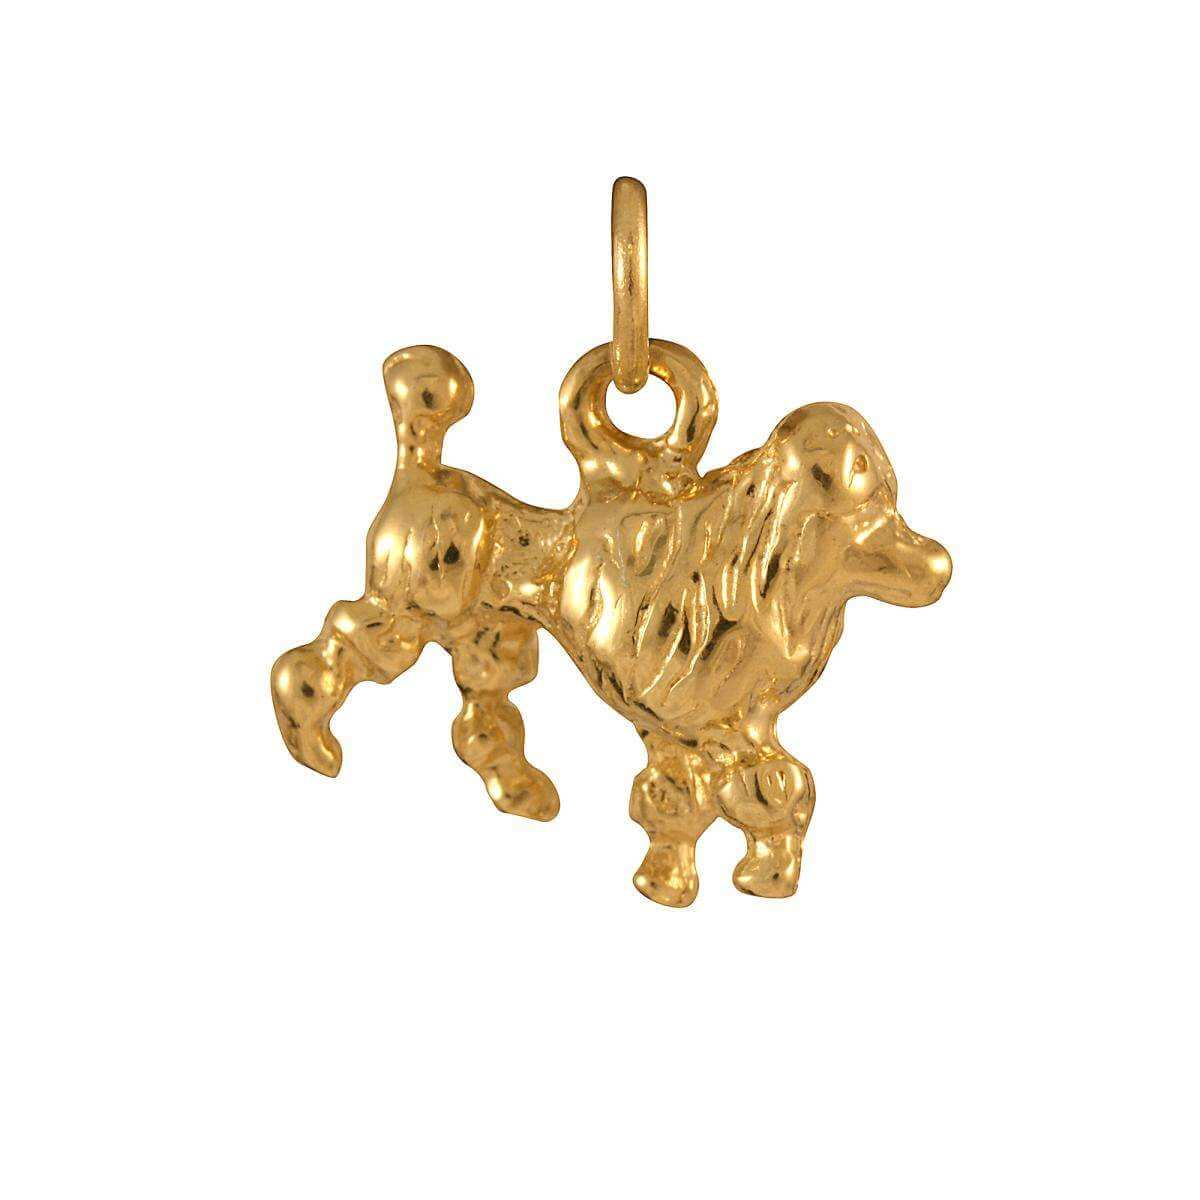 9ct Gold Poodle Charm